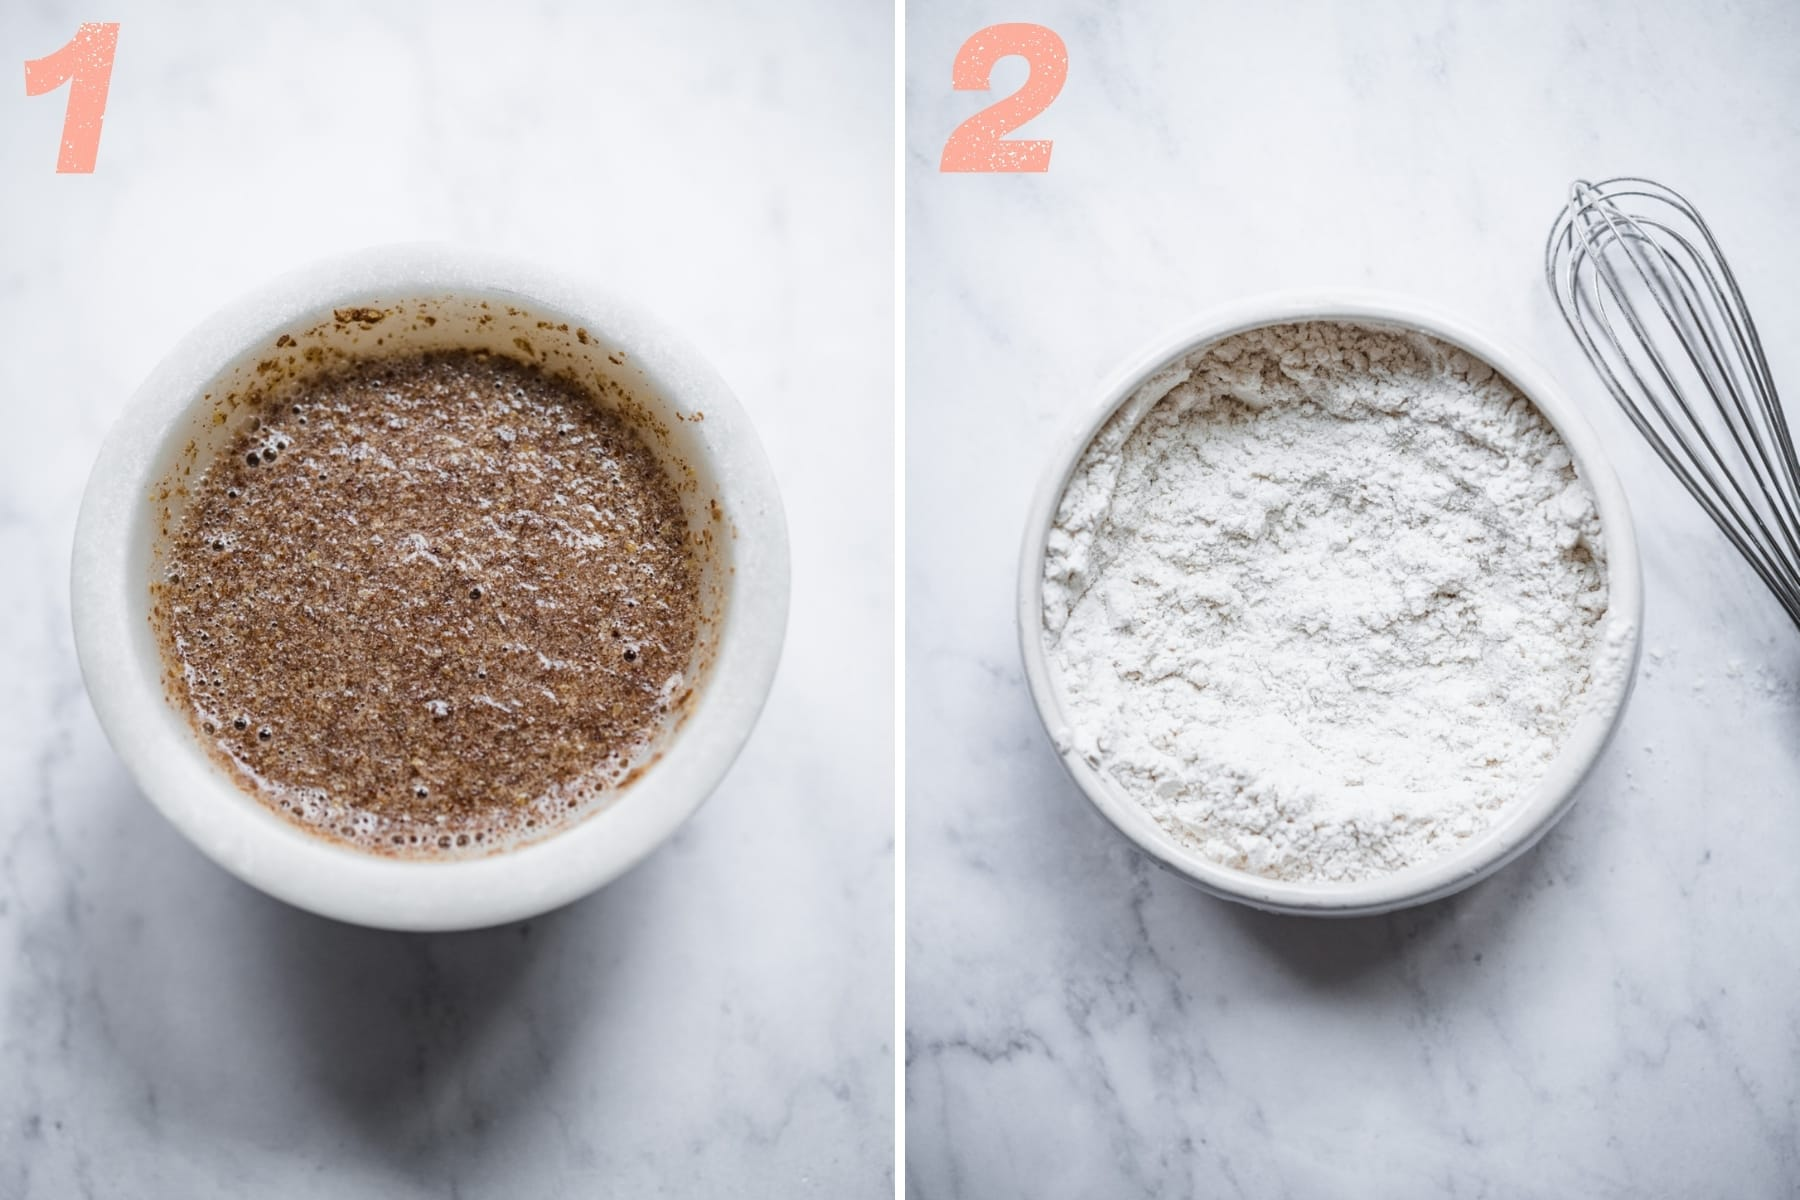 on the left: flax egg in a small bowl. on the right: flour, baking soda and salt mixed together in bowl.